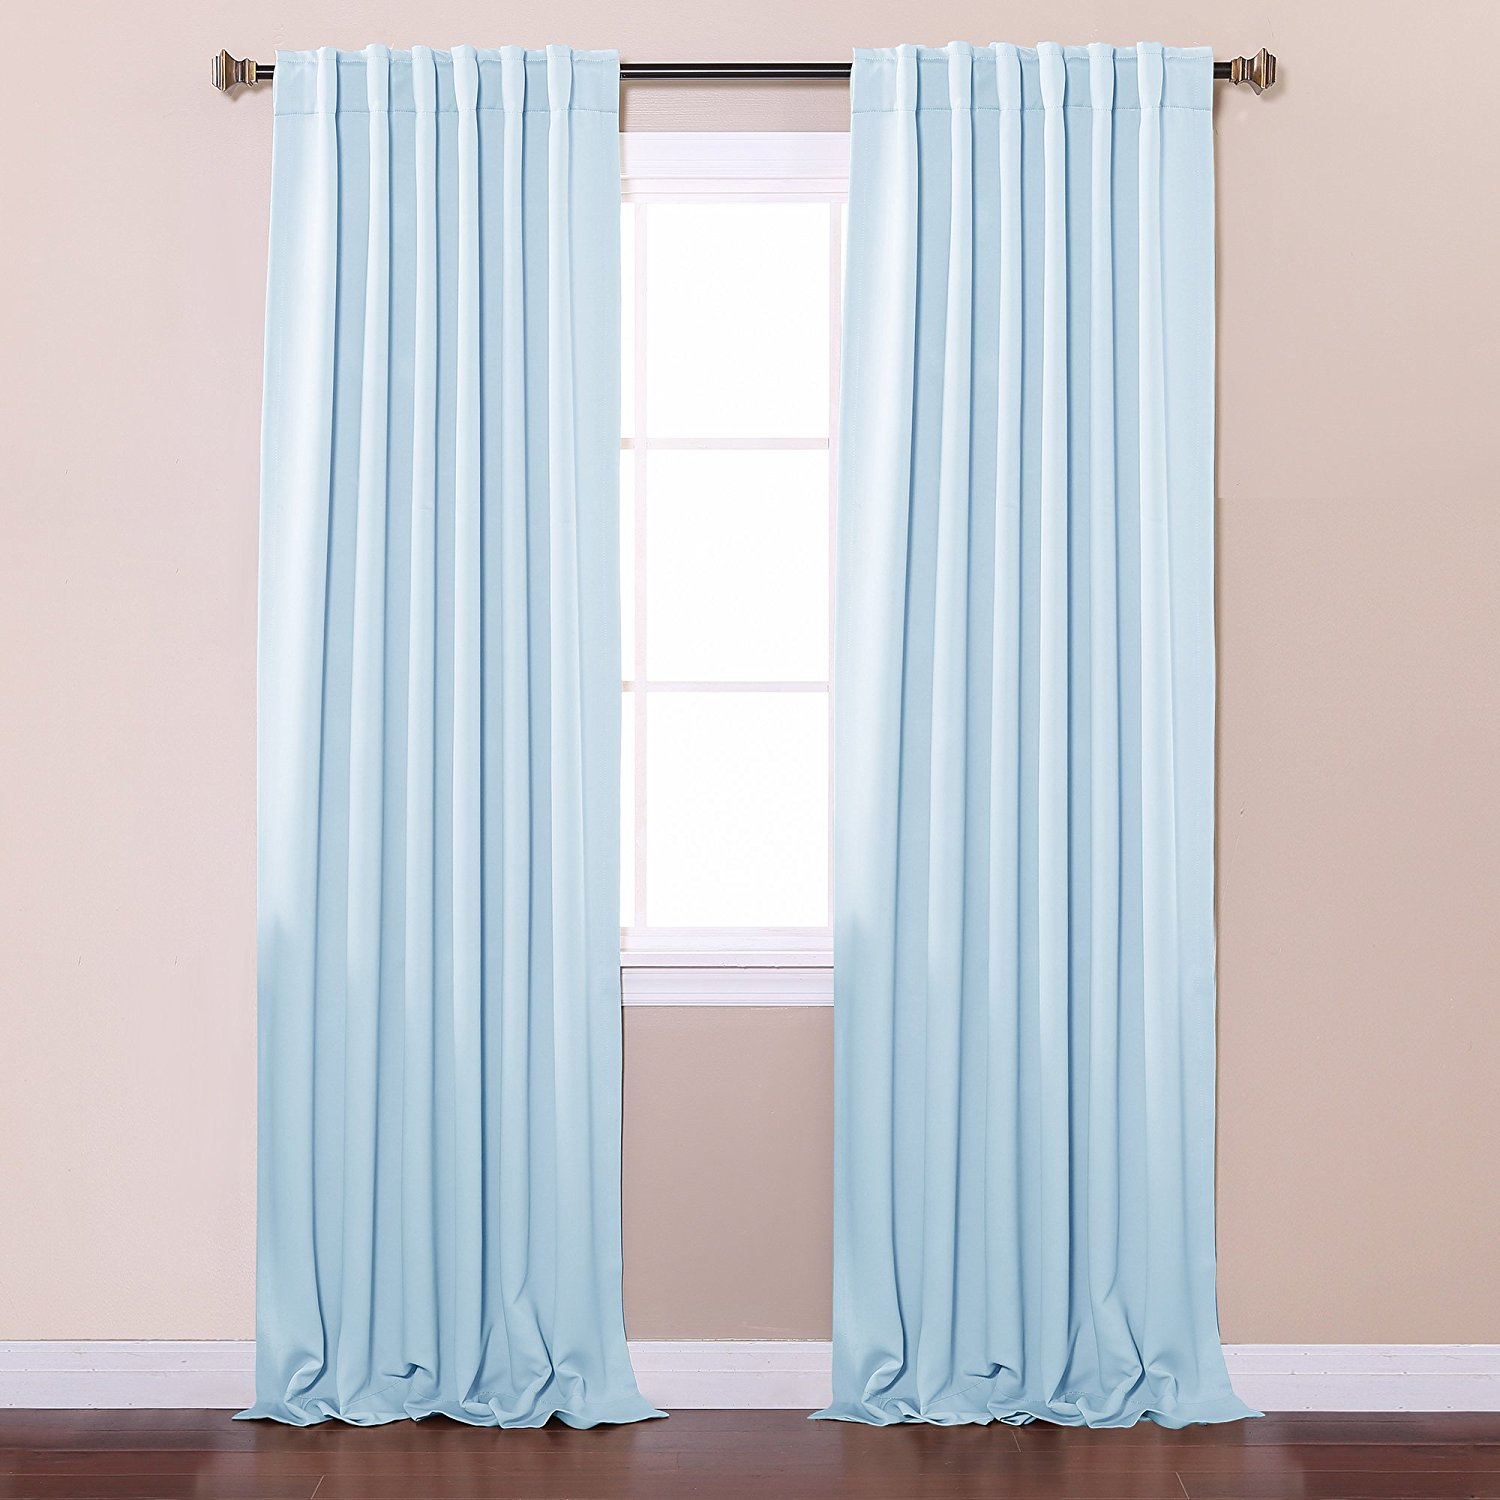 Thermal Curtains Grommet Top | Inexpensive Thermal Curtains | Thermal Insulated Curtains